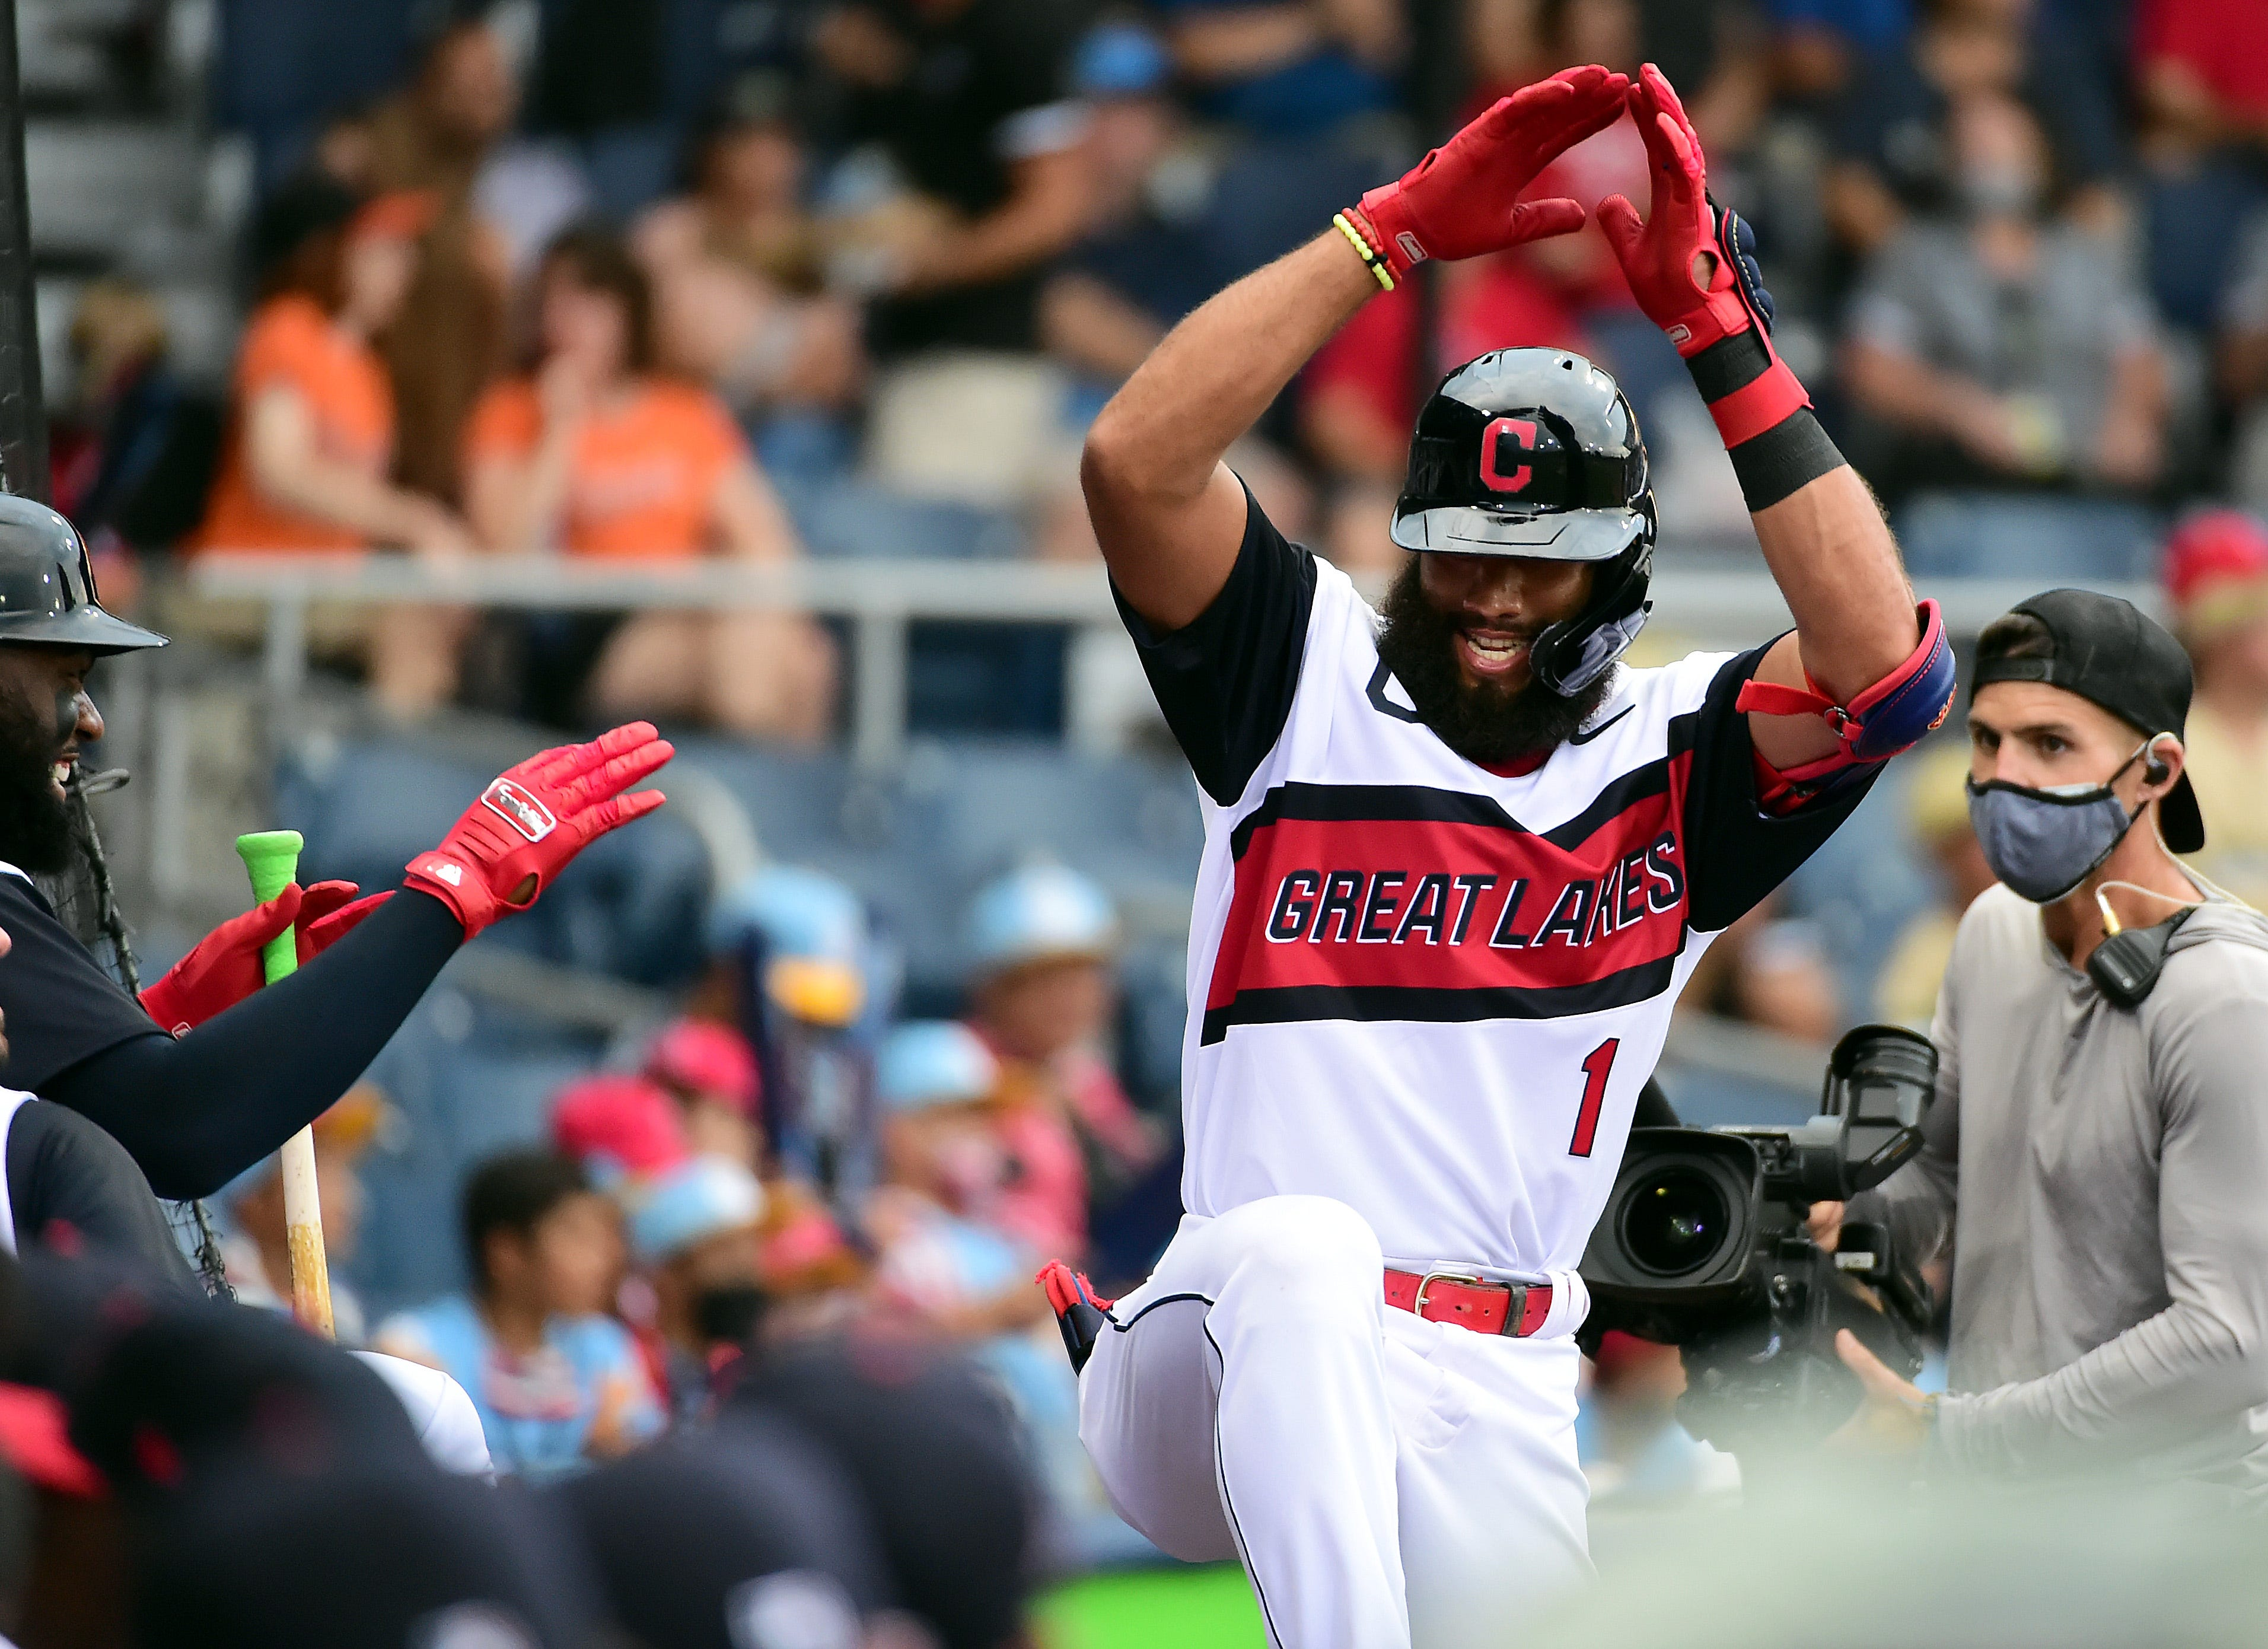 Whatever it takes to draw them in : Major leaguers relish opportunity to play in front of Little Leaguers